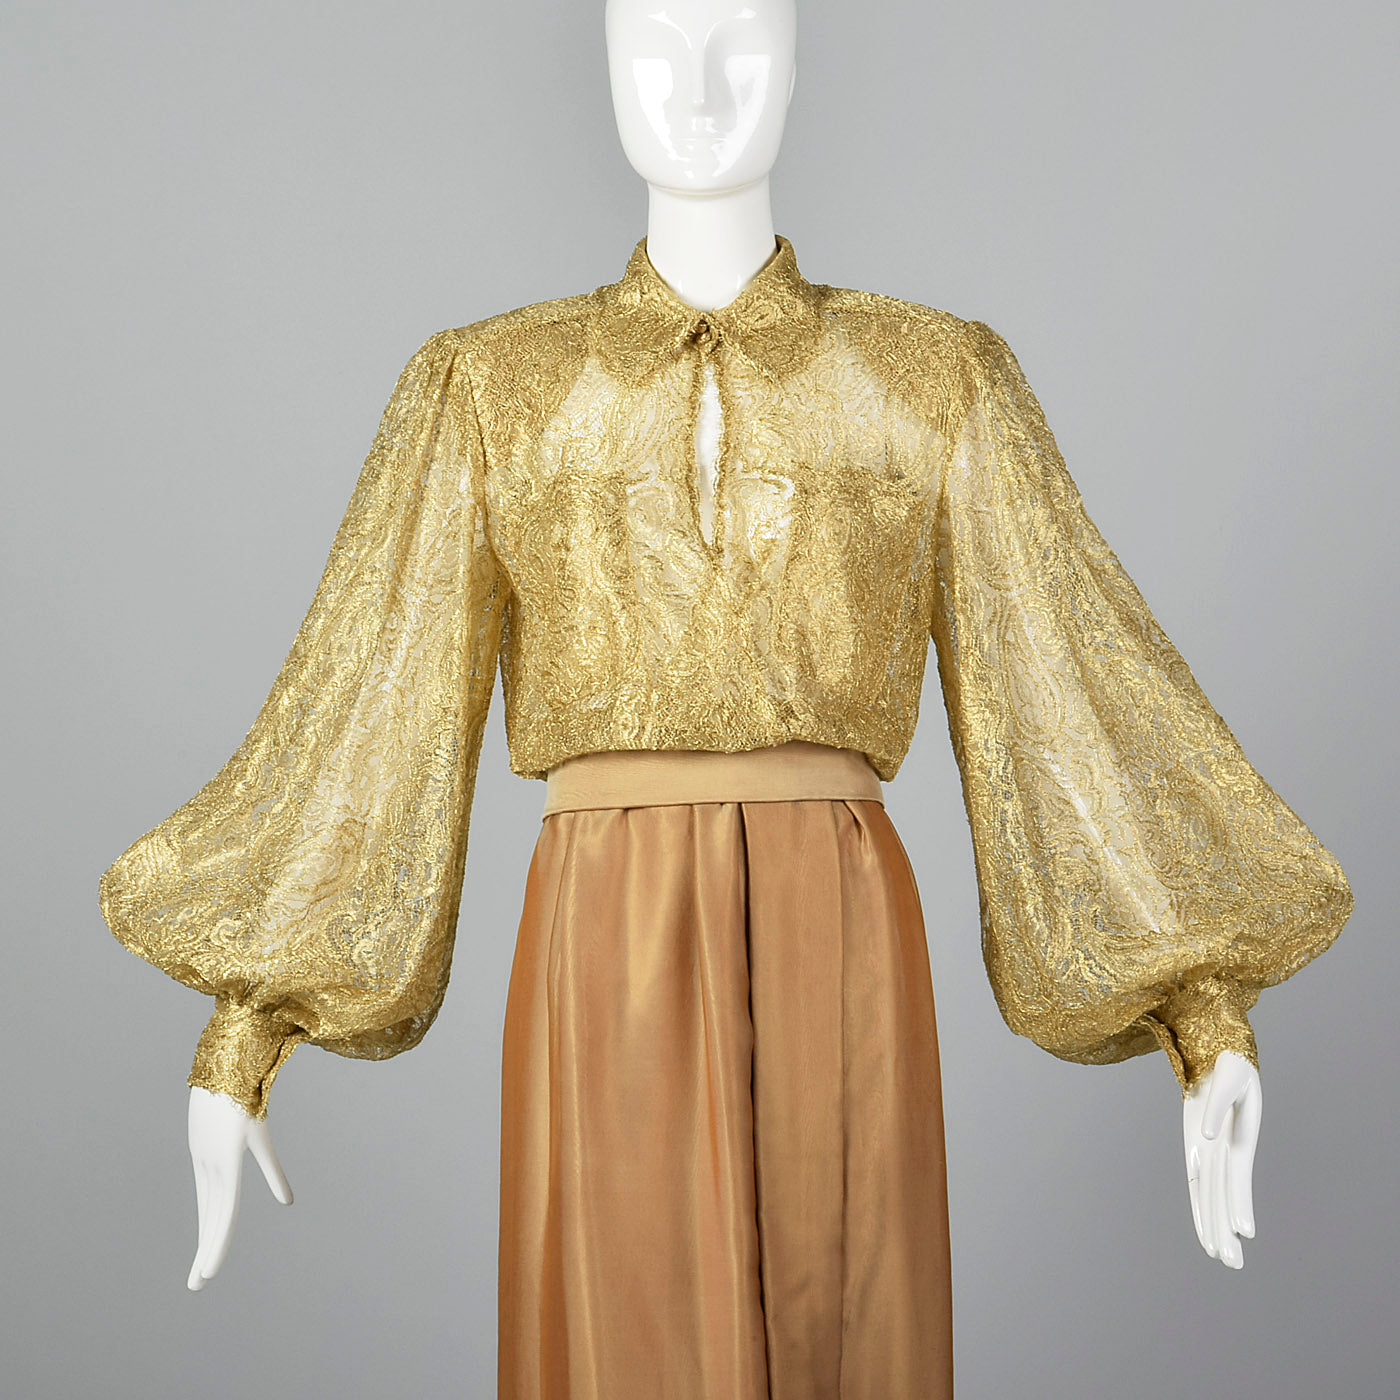 1970s Gold Maxi Dress with Bishop Sleeves